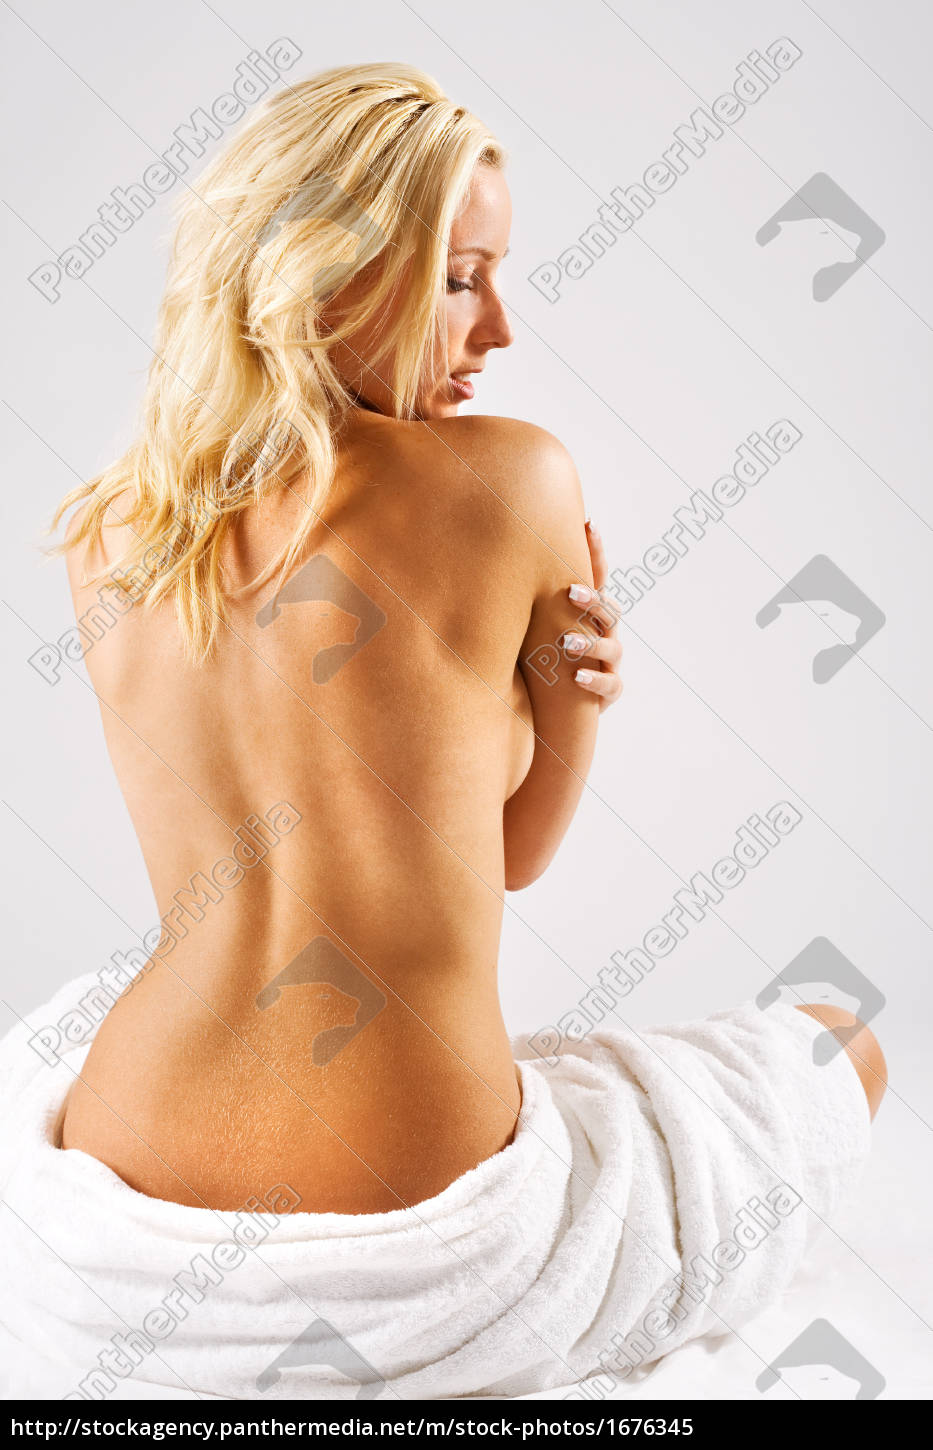 blonde, girl, with, bare, back - 1676345